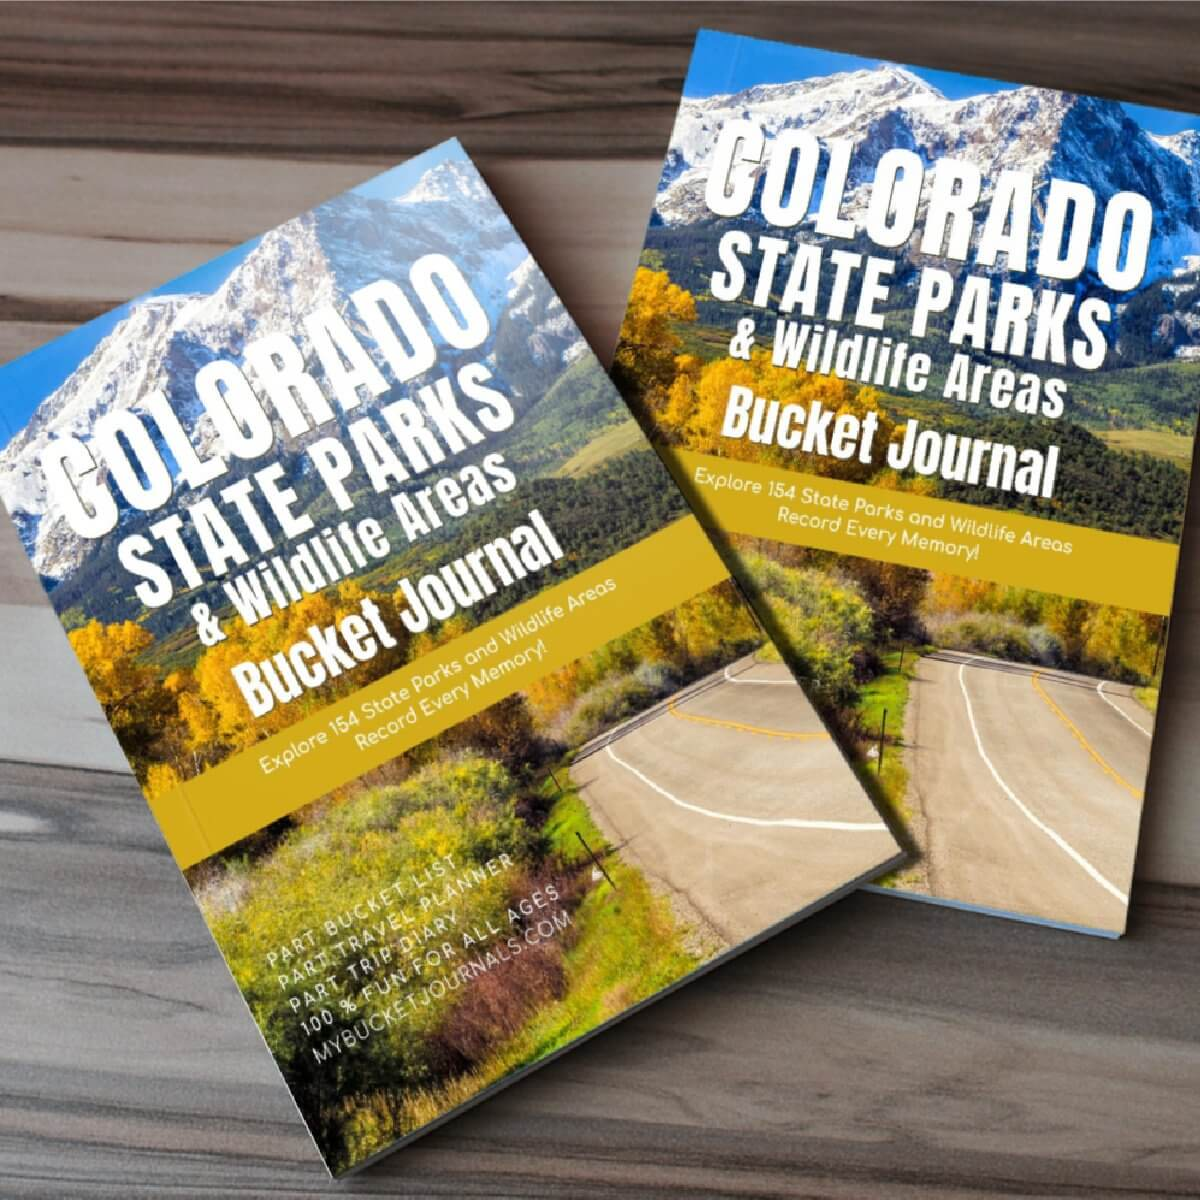 Colorado State Parks & Wildlife Areas Bucket Journal - Paperback